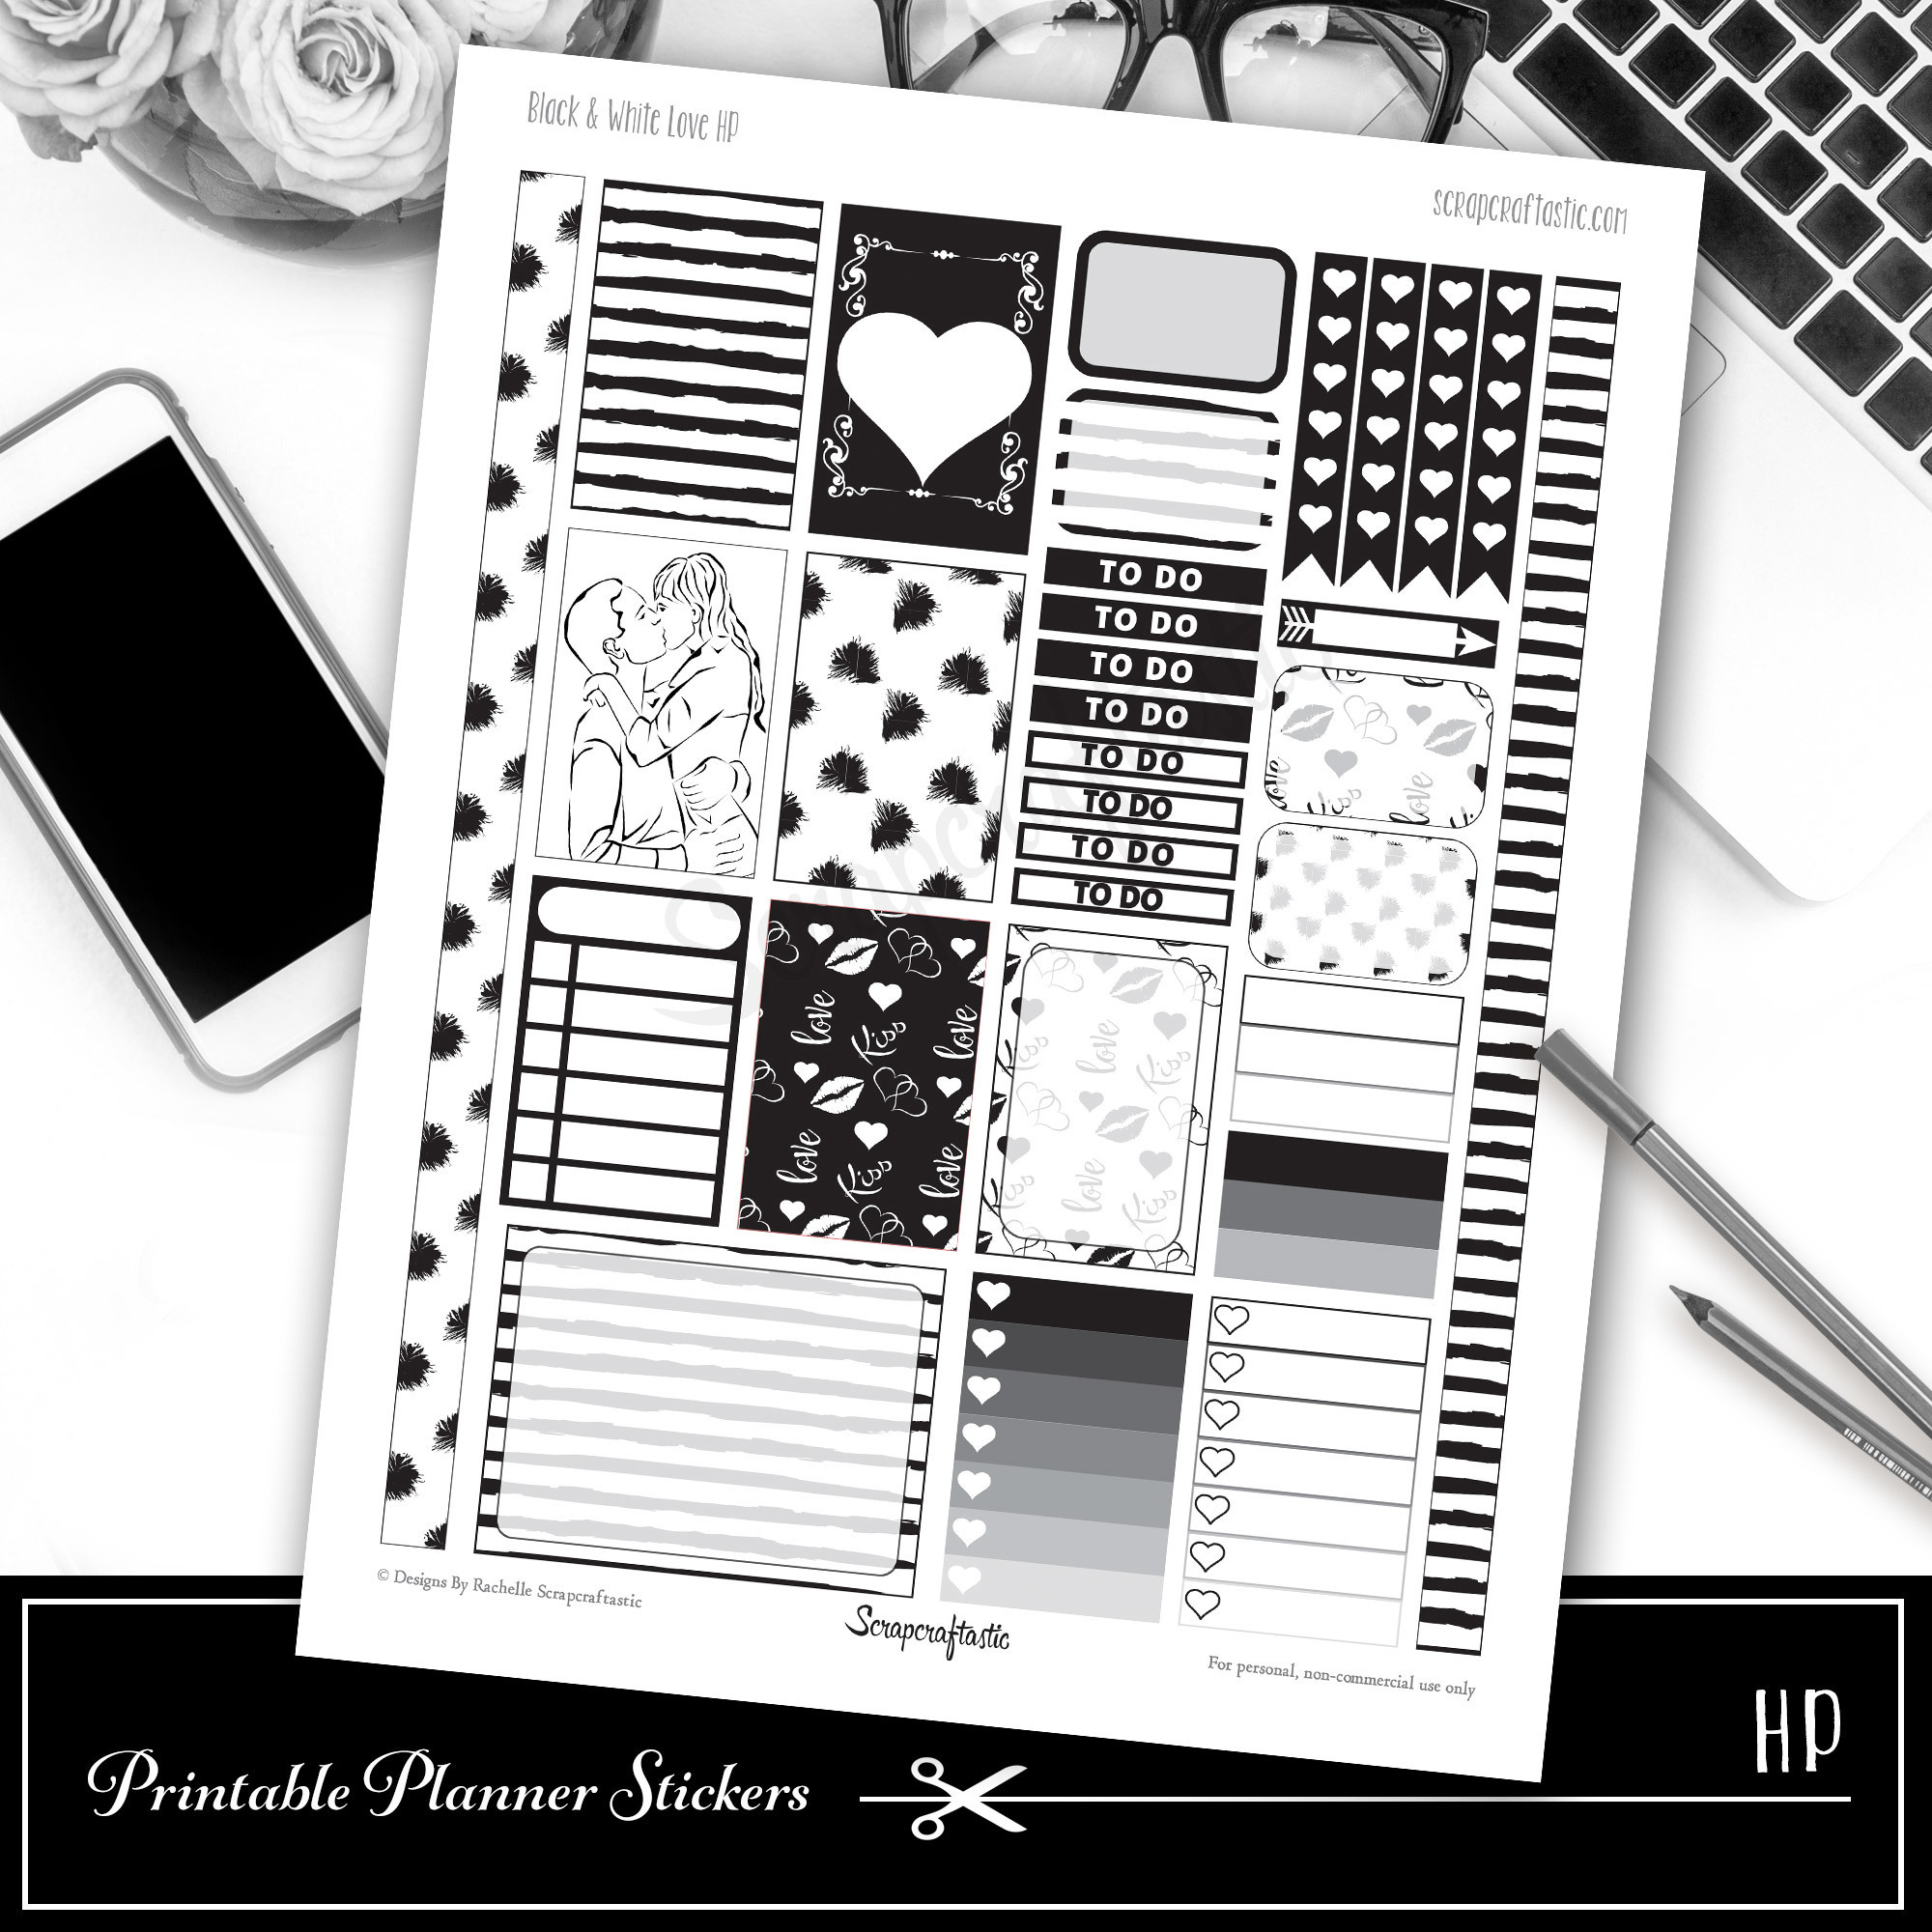 Black & White Love Printable Planner Stickers for Classic Happy Planner 01007